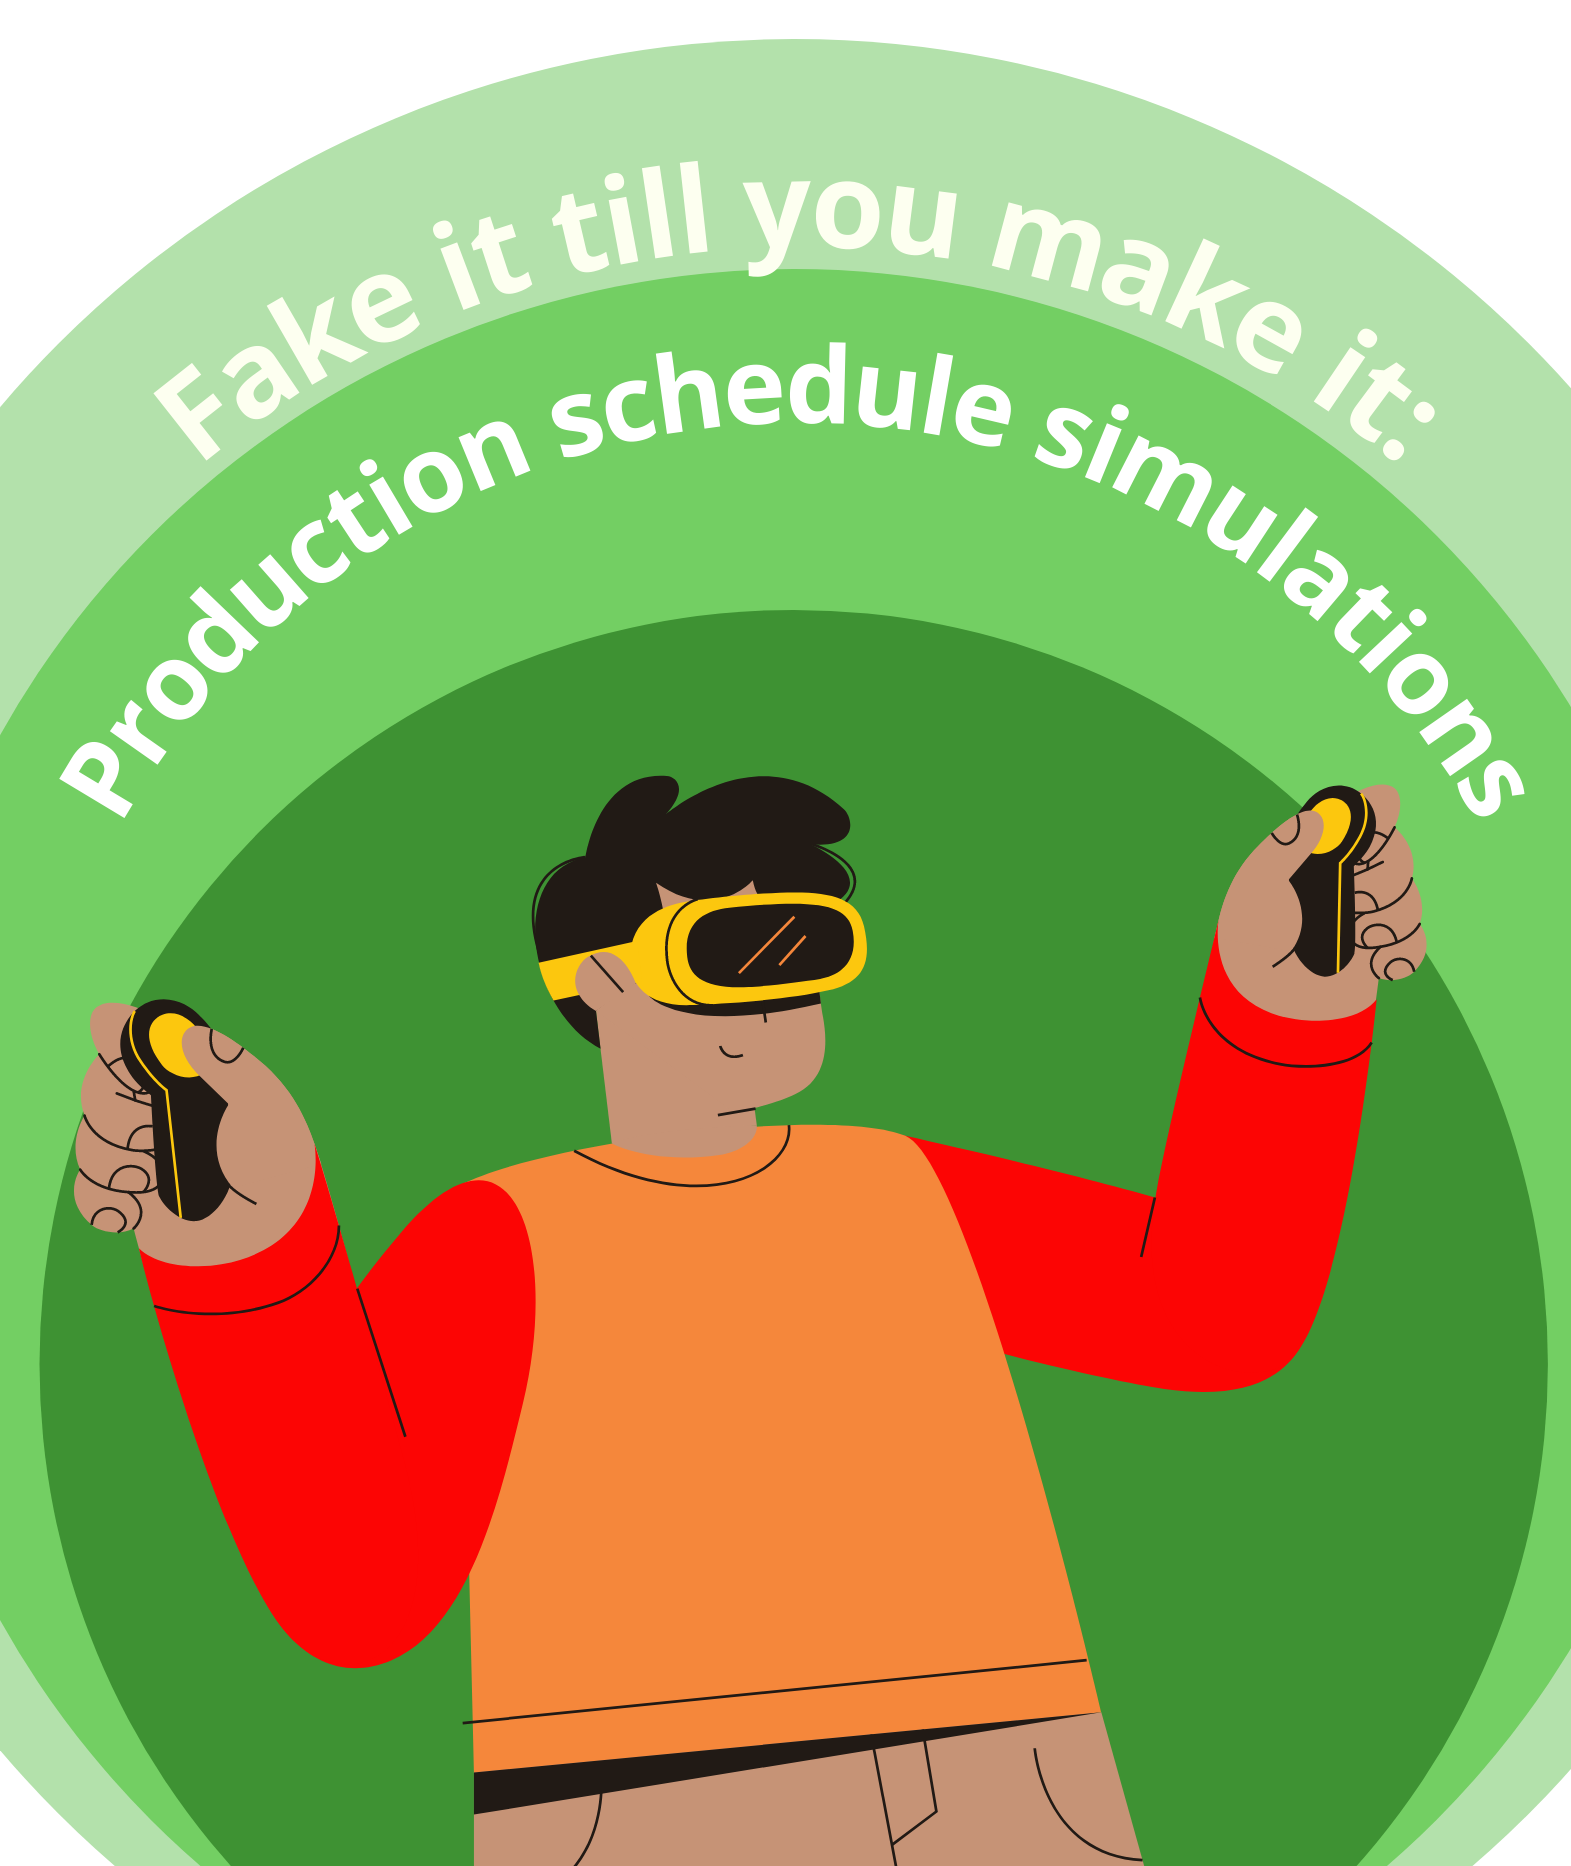 Fake it till you make it: Production schedule simulations in the VAPS